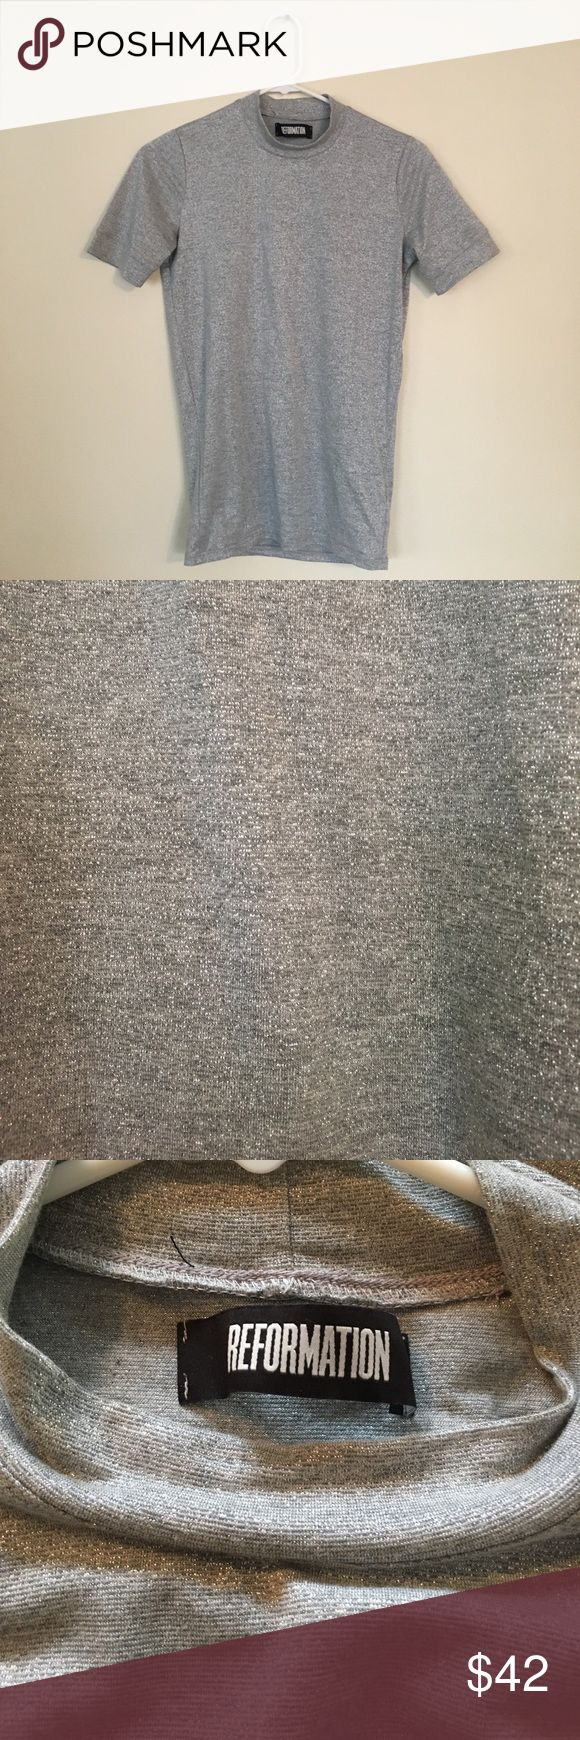 Reformation top Mock neck grey with silver stitching short sleeve top Reformation Tops Tees - Short Sleeve